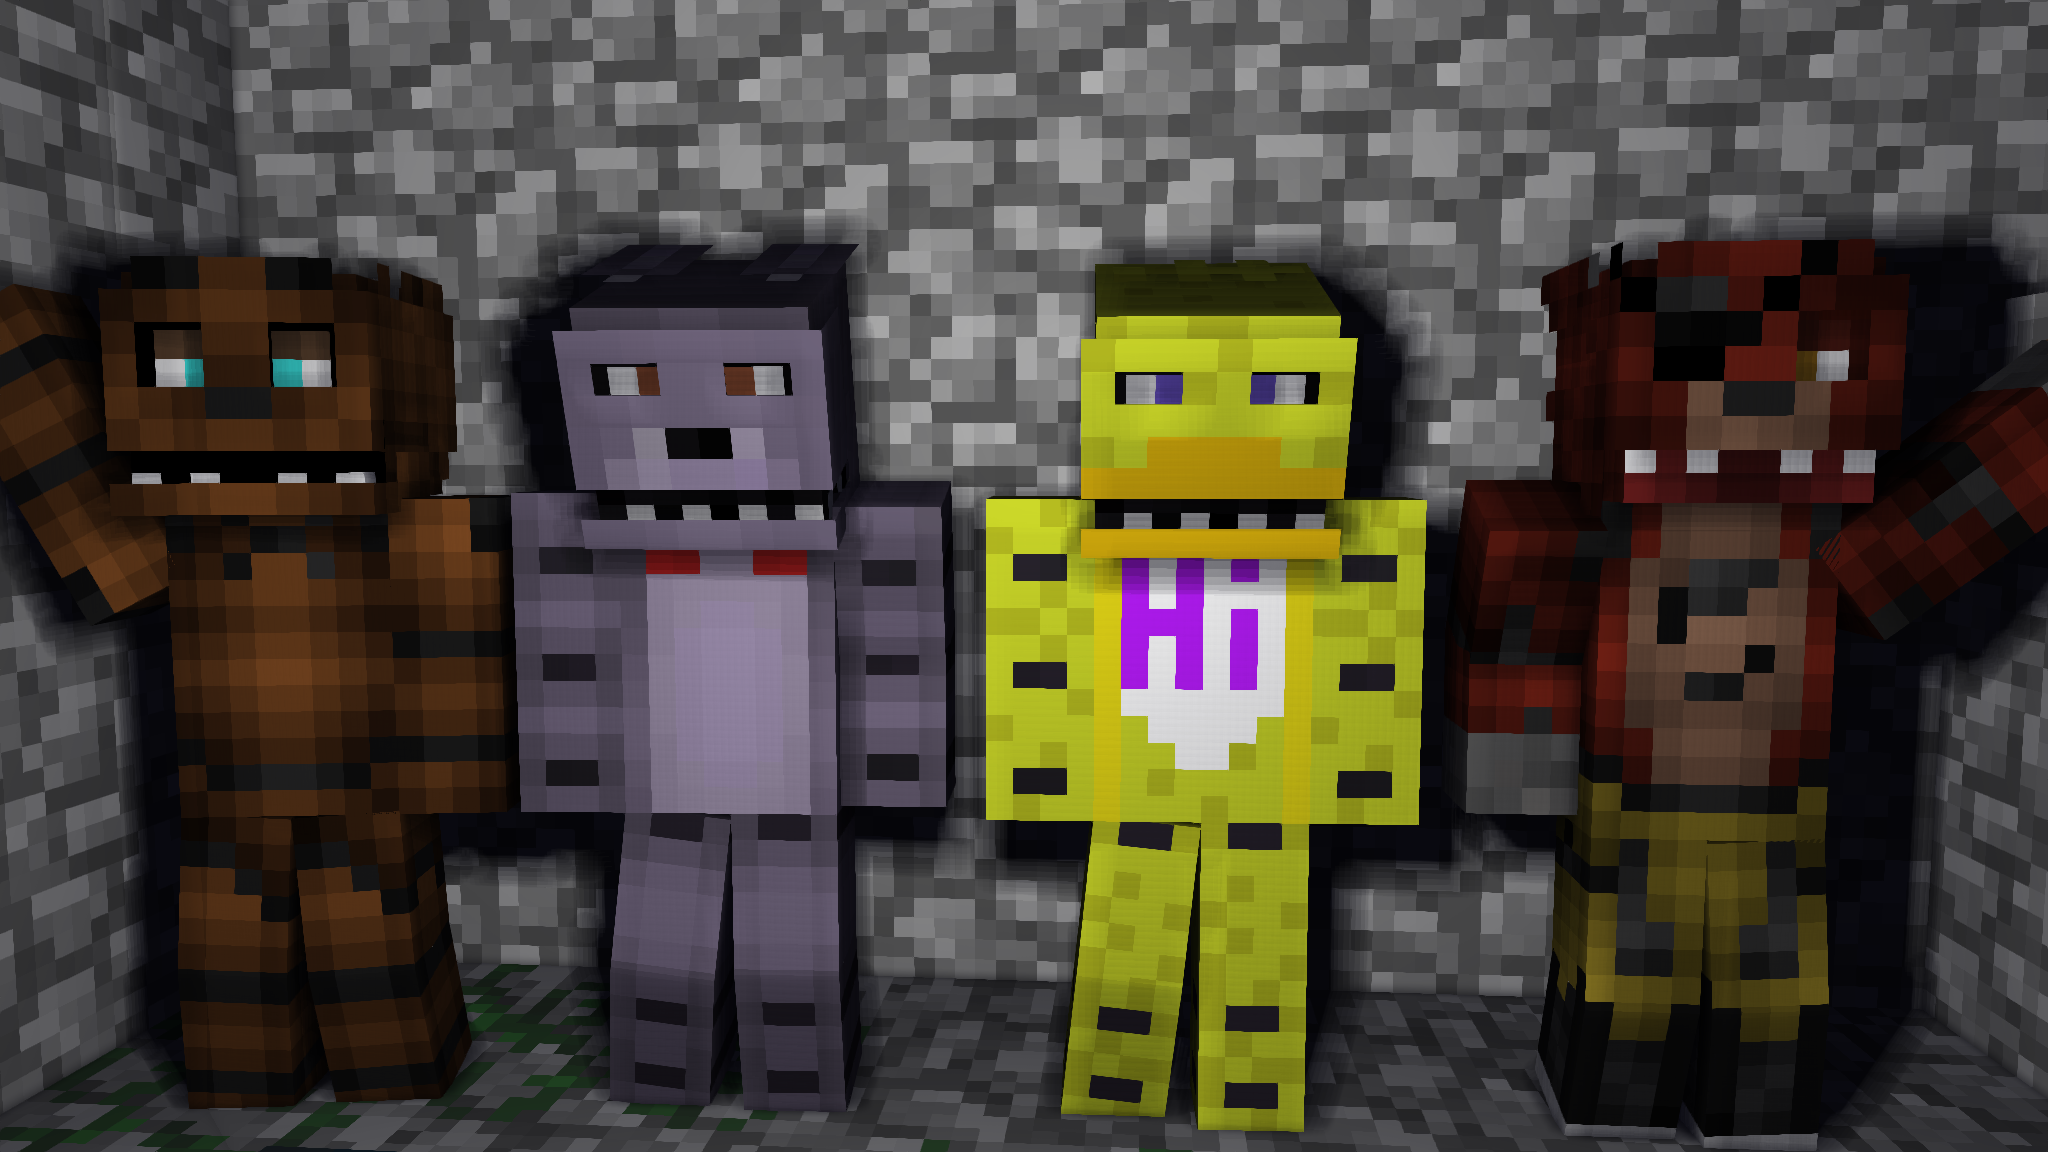 Five nights at minecraft 2 game - Five Nights At Minecraft